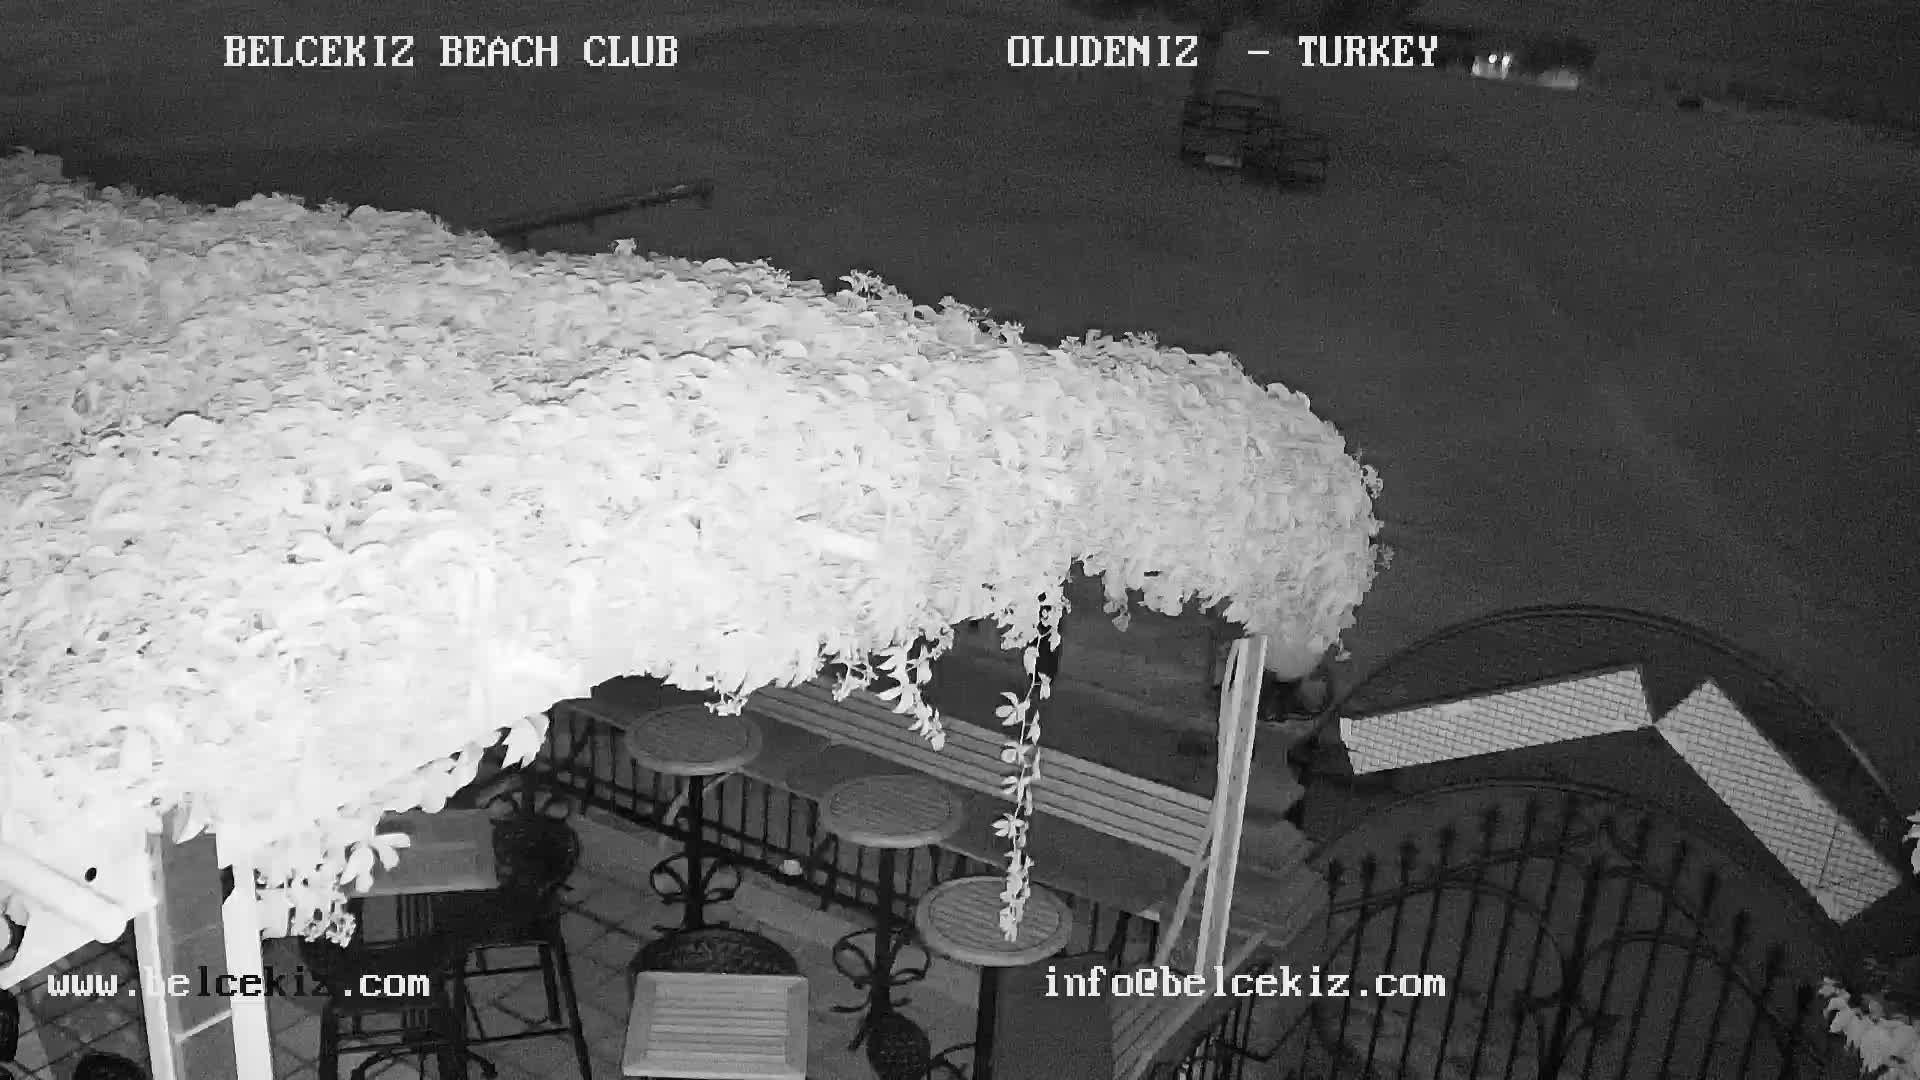 Belcekiz Beach Hotel Webcam